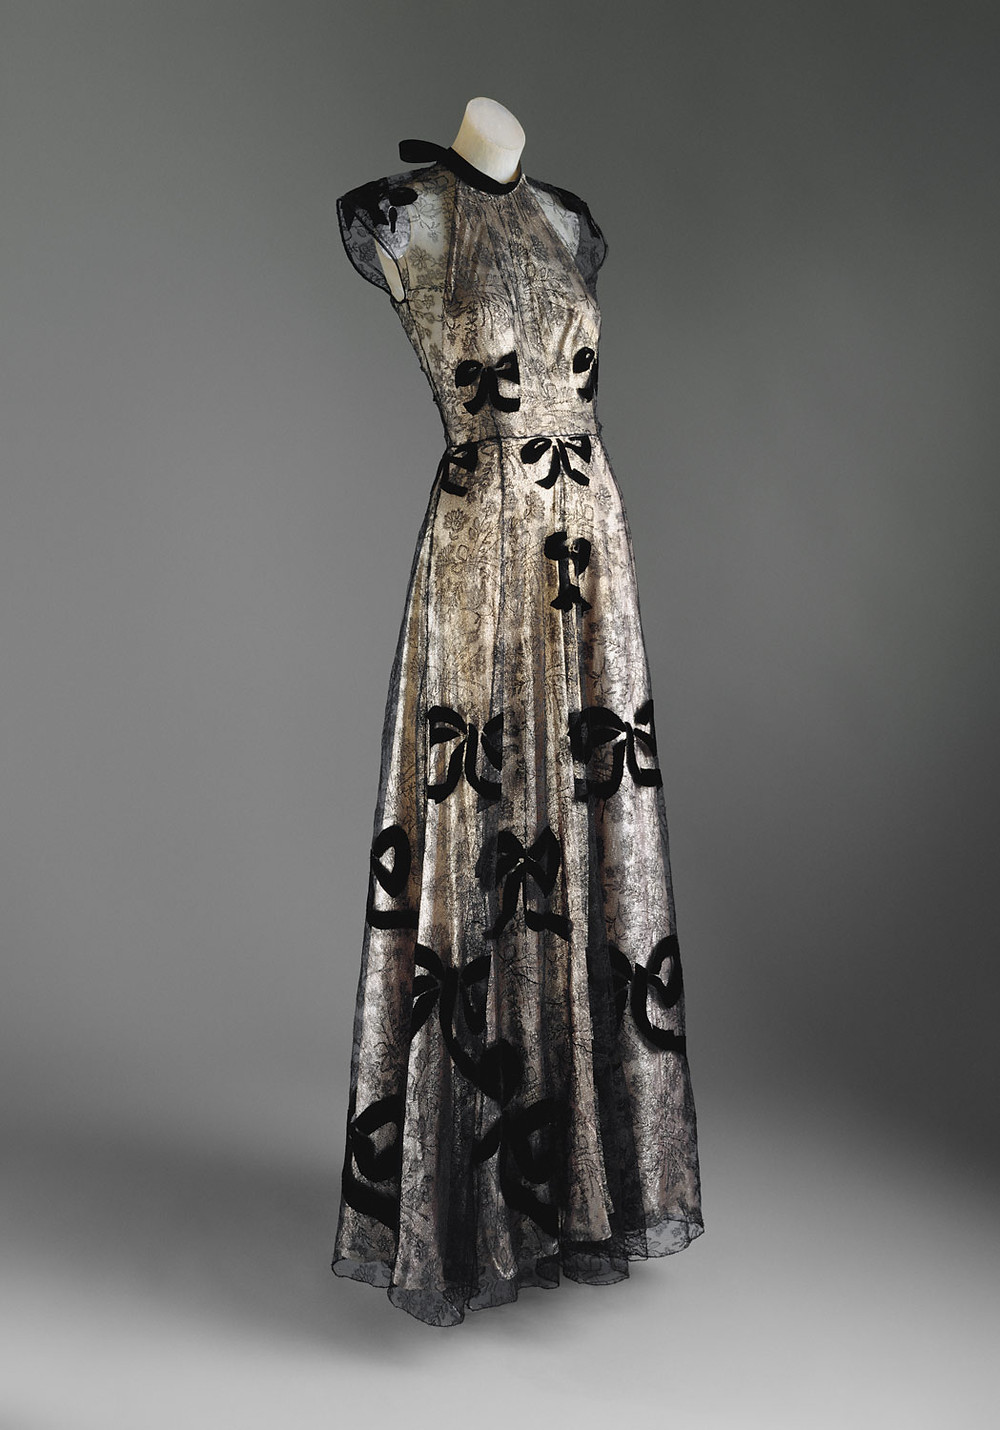 from The Met, a Vionnette ball gown from 1939.